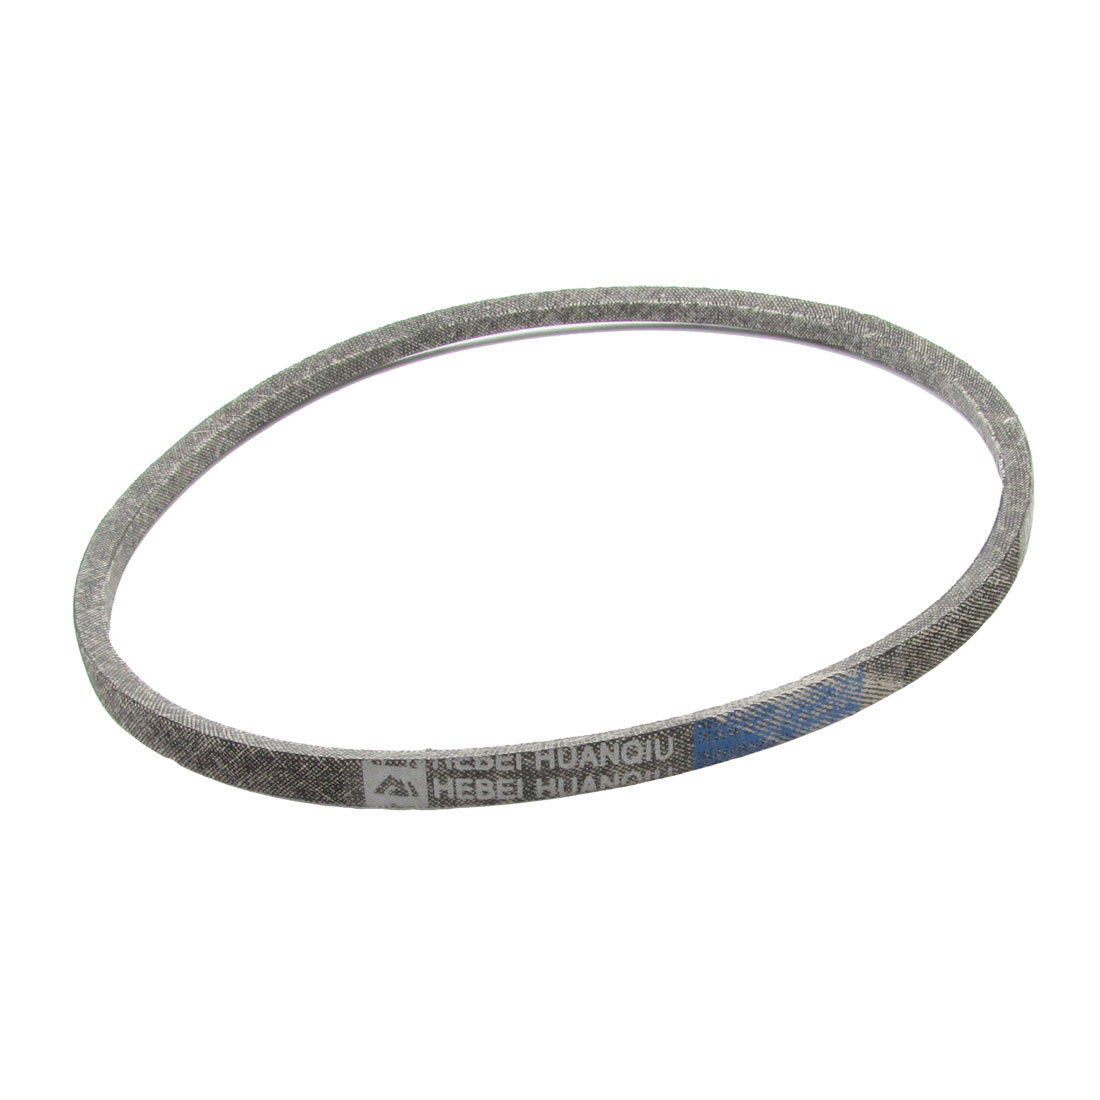 Washing Machine Repair Part 9mm Outer Width 6.5mm Thick V Type Belt O-600E